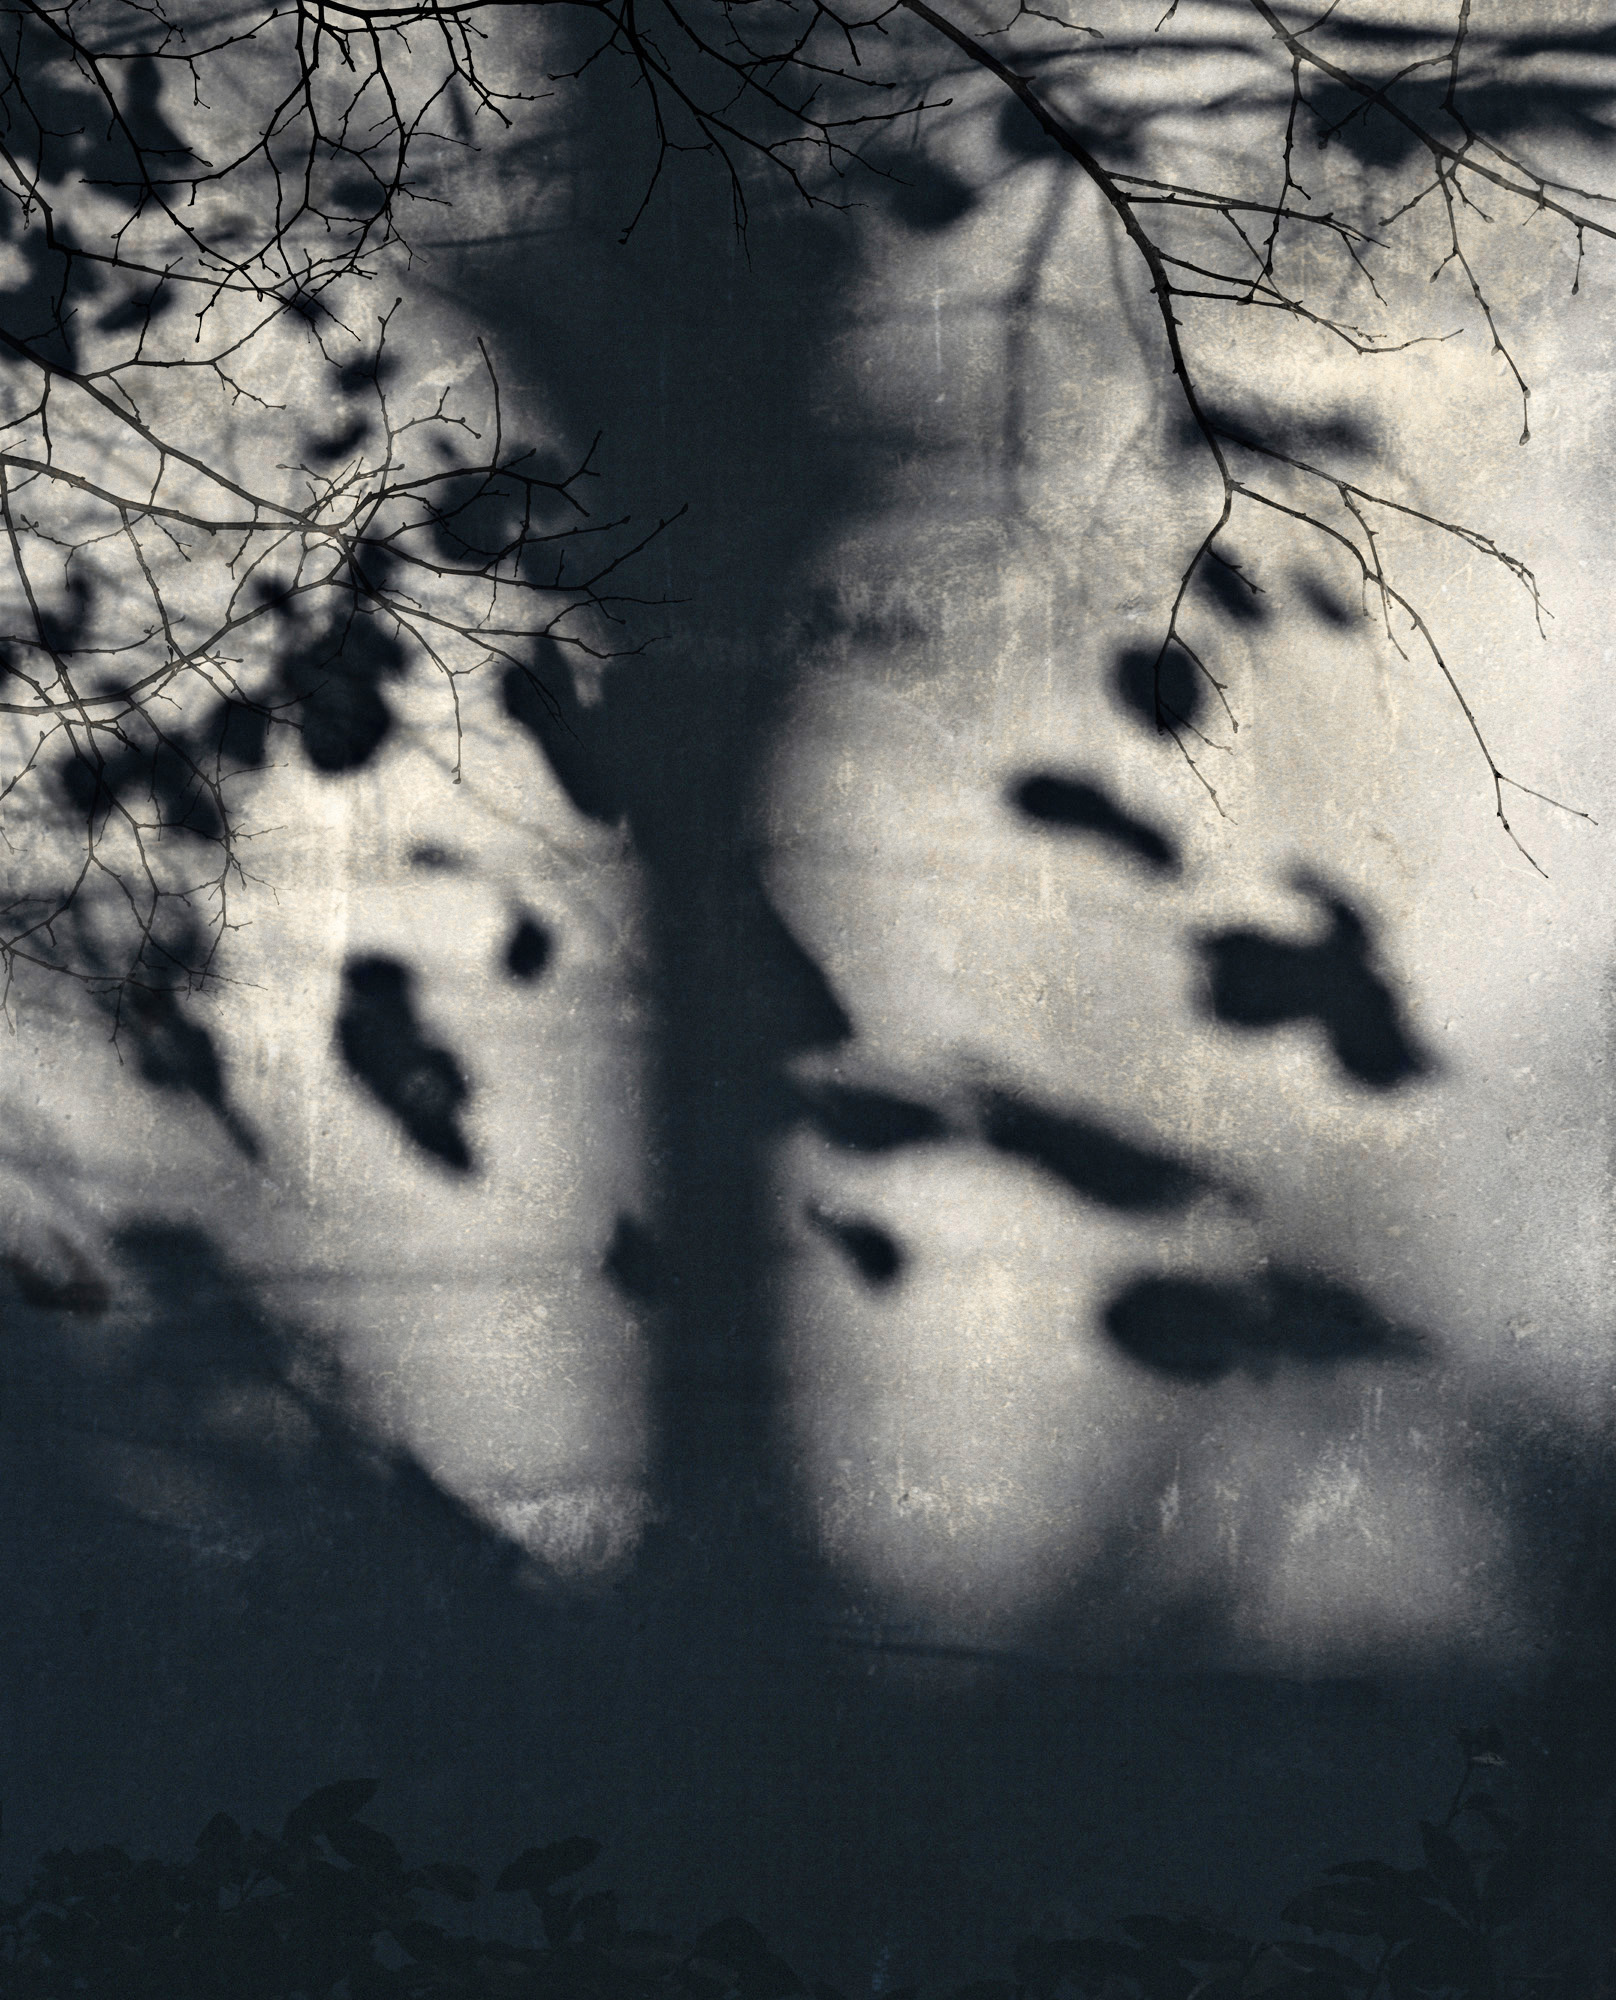 Jocelyne Allucherie Trois de Nuit 3, 2014 Shadows:  Three of Day and Three of Night Series injet photograph on canvas